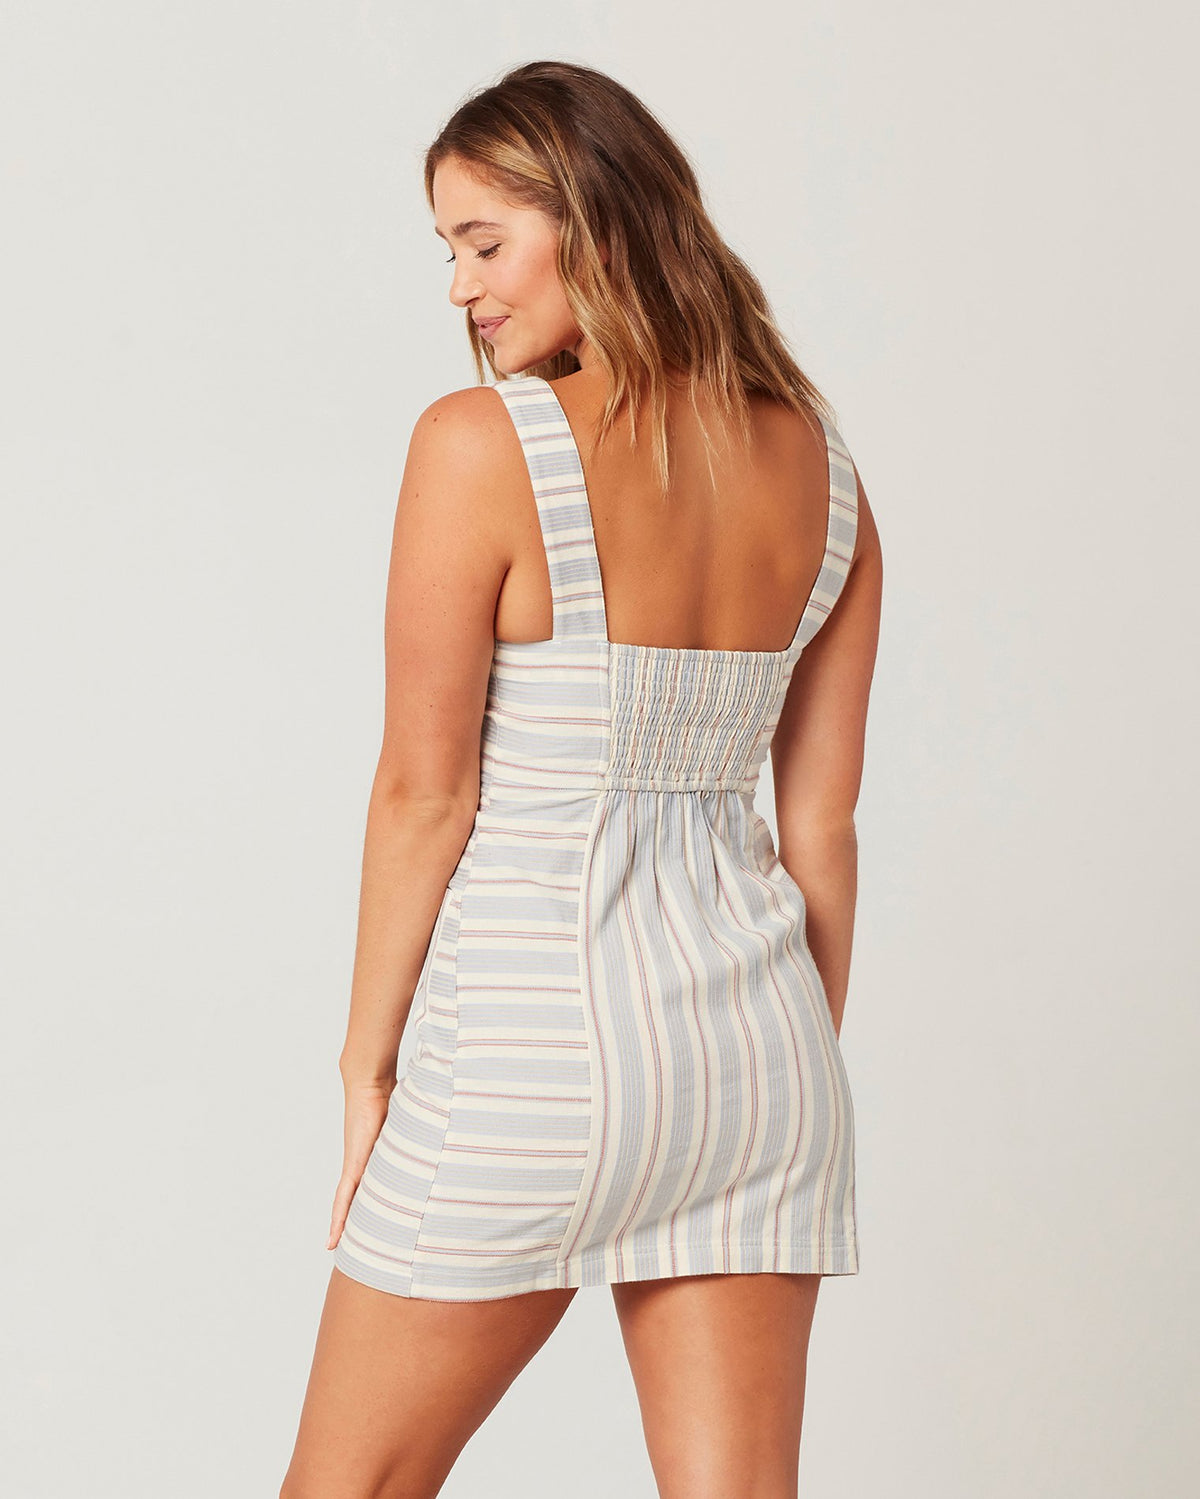 Road Trippin Stripe | Model: Chanel (size: M)